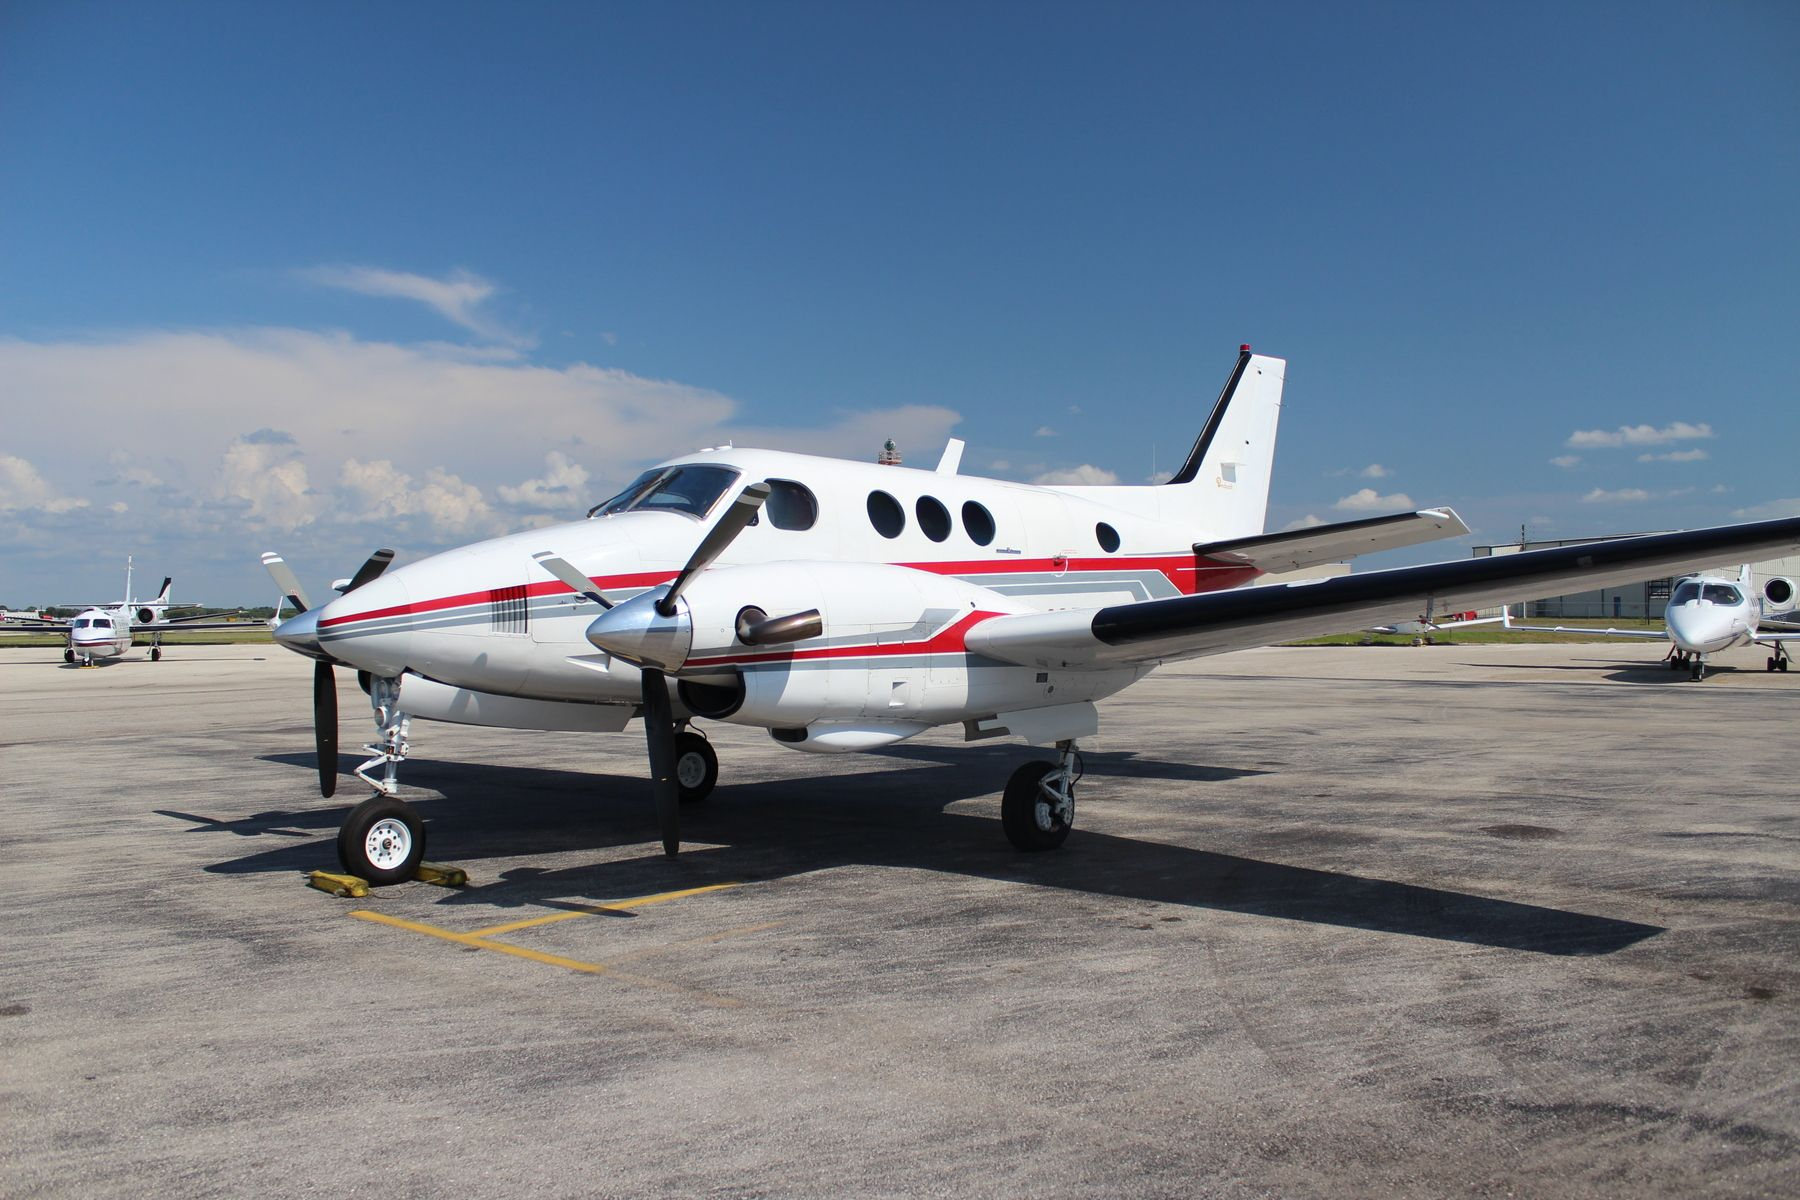 1973 Beechcraft King Air C90 => Airplane for sale